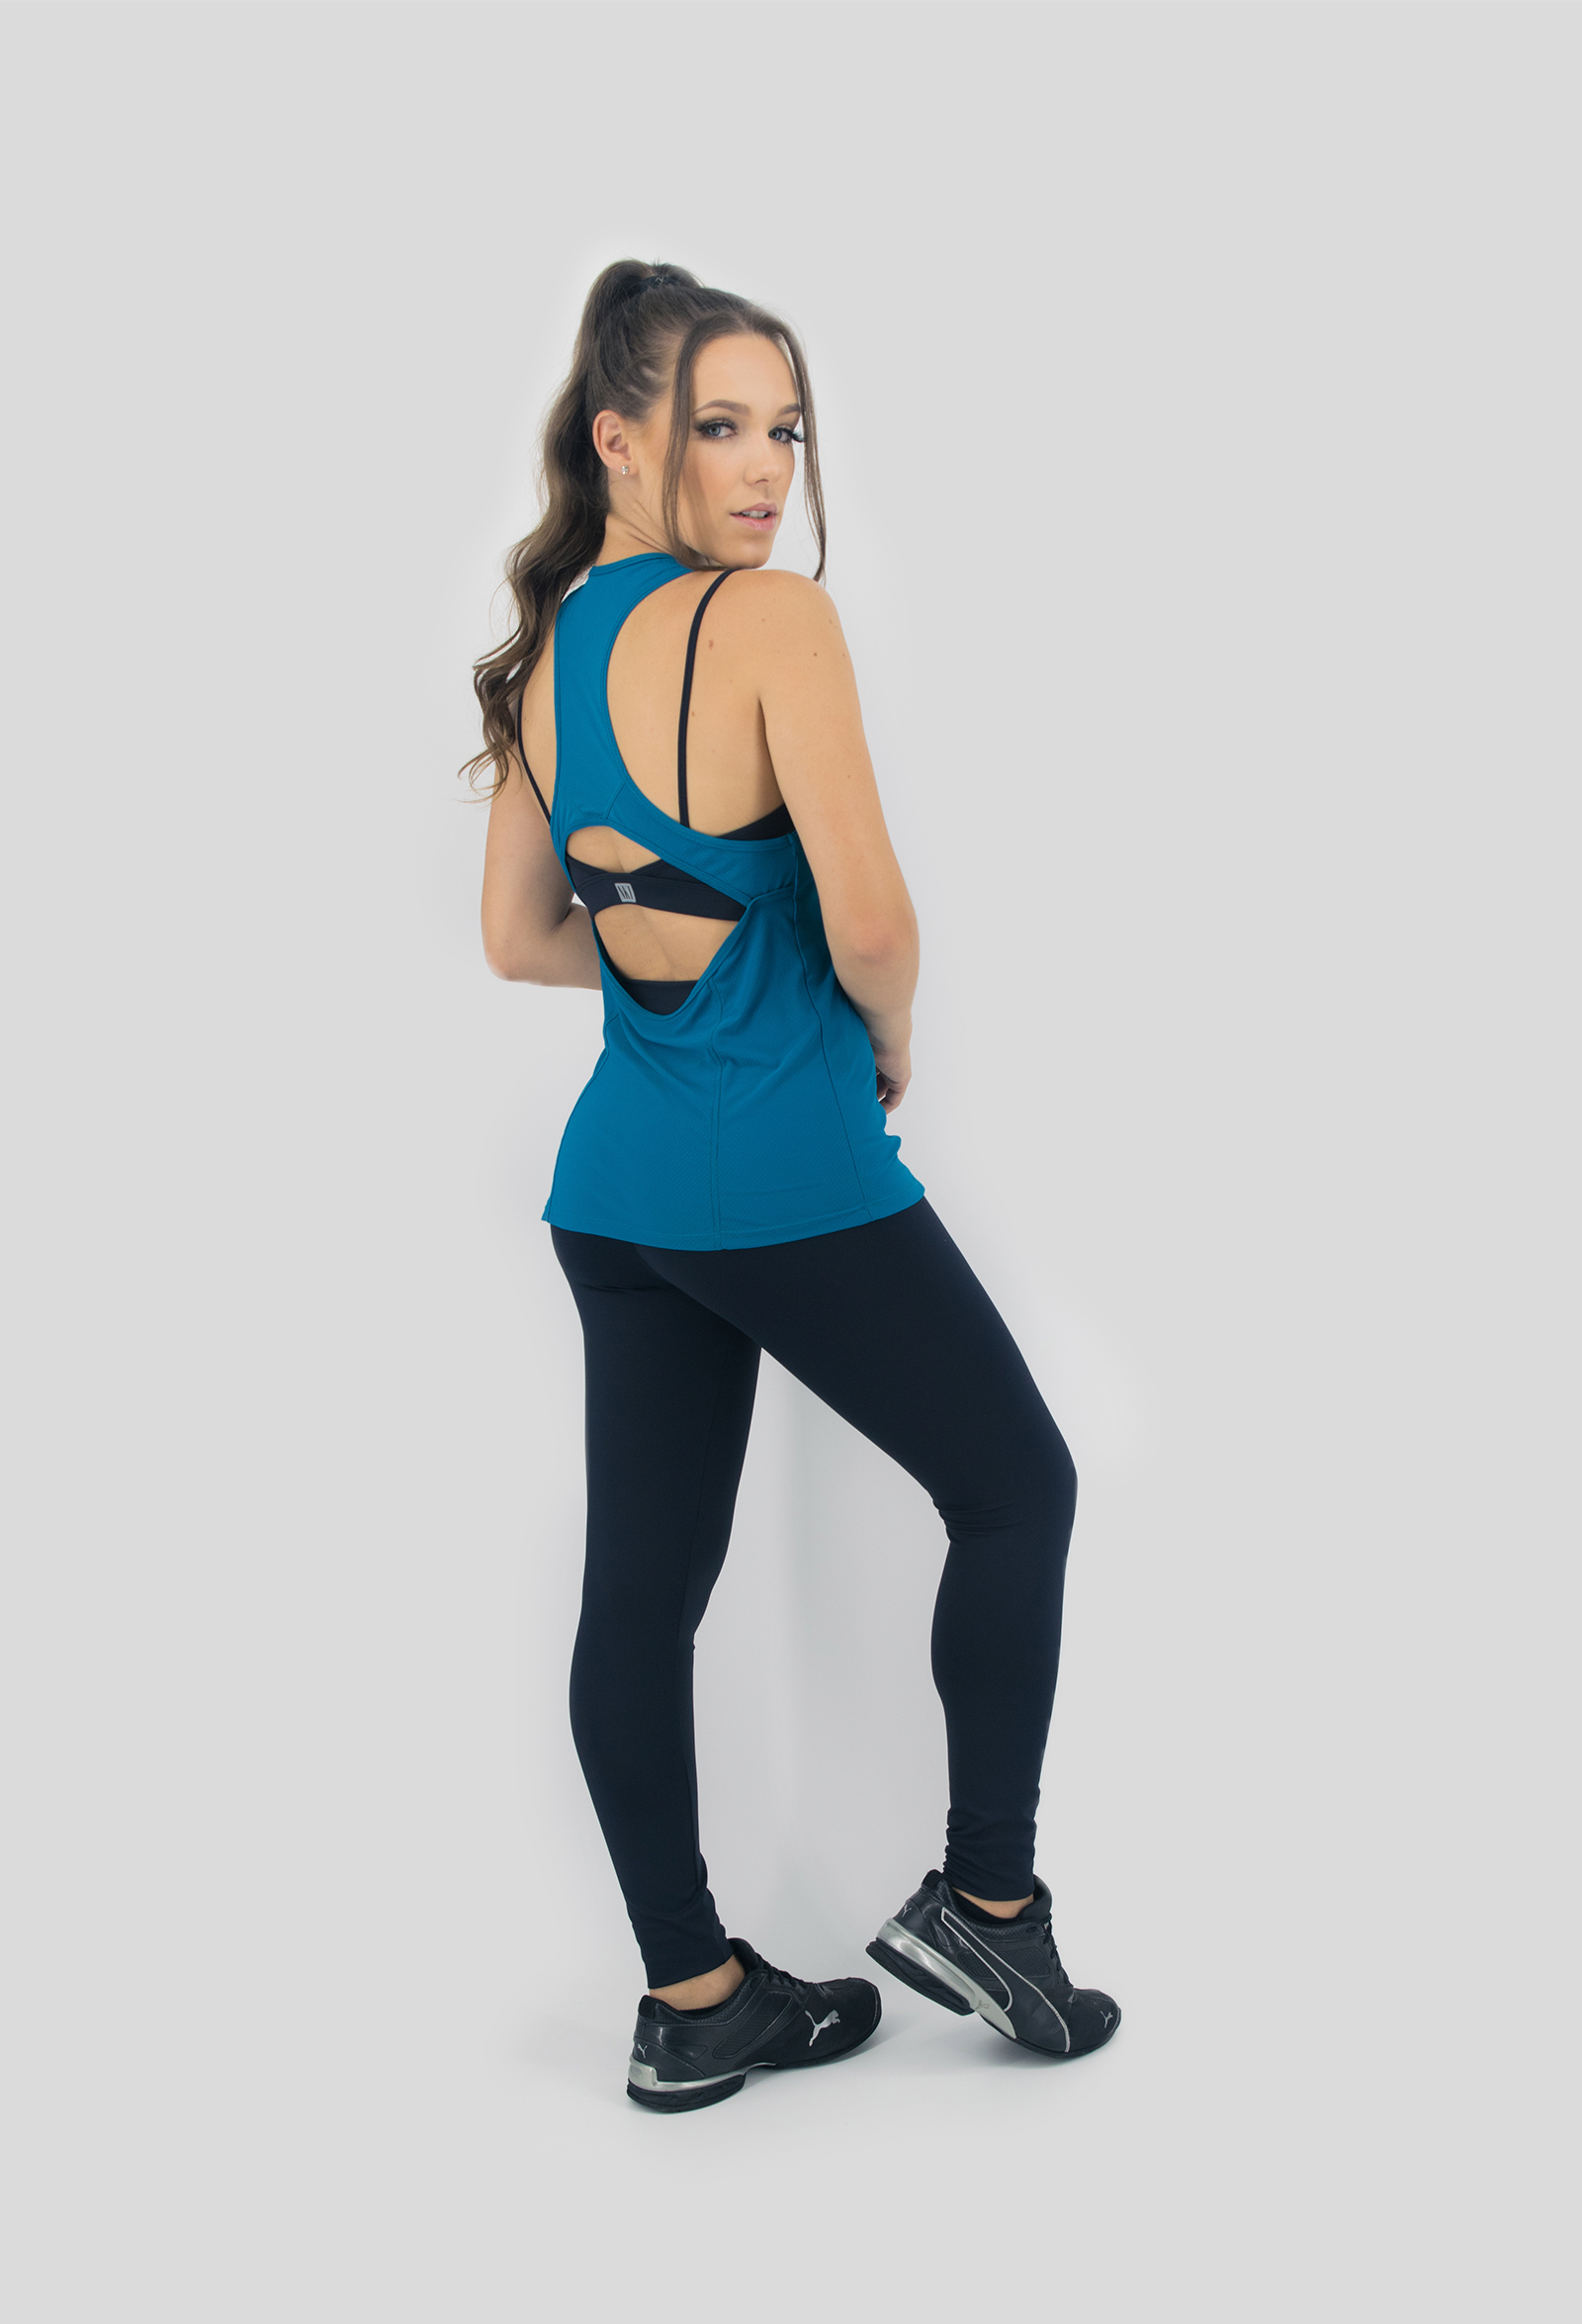 Regata Clipping Petróleo, Coleção Move Your Body - NKT Fitwear Moda Fitness